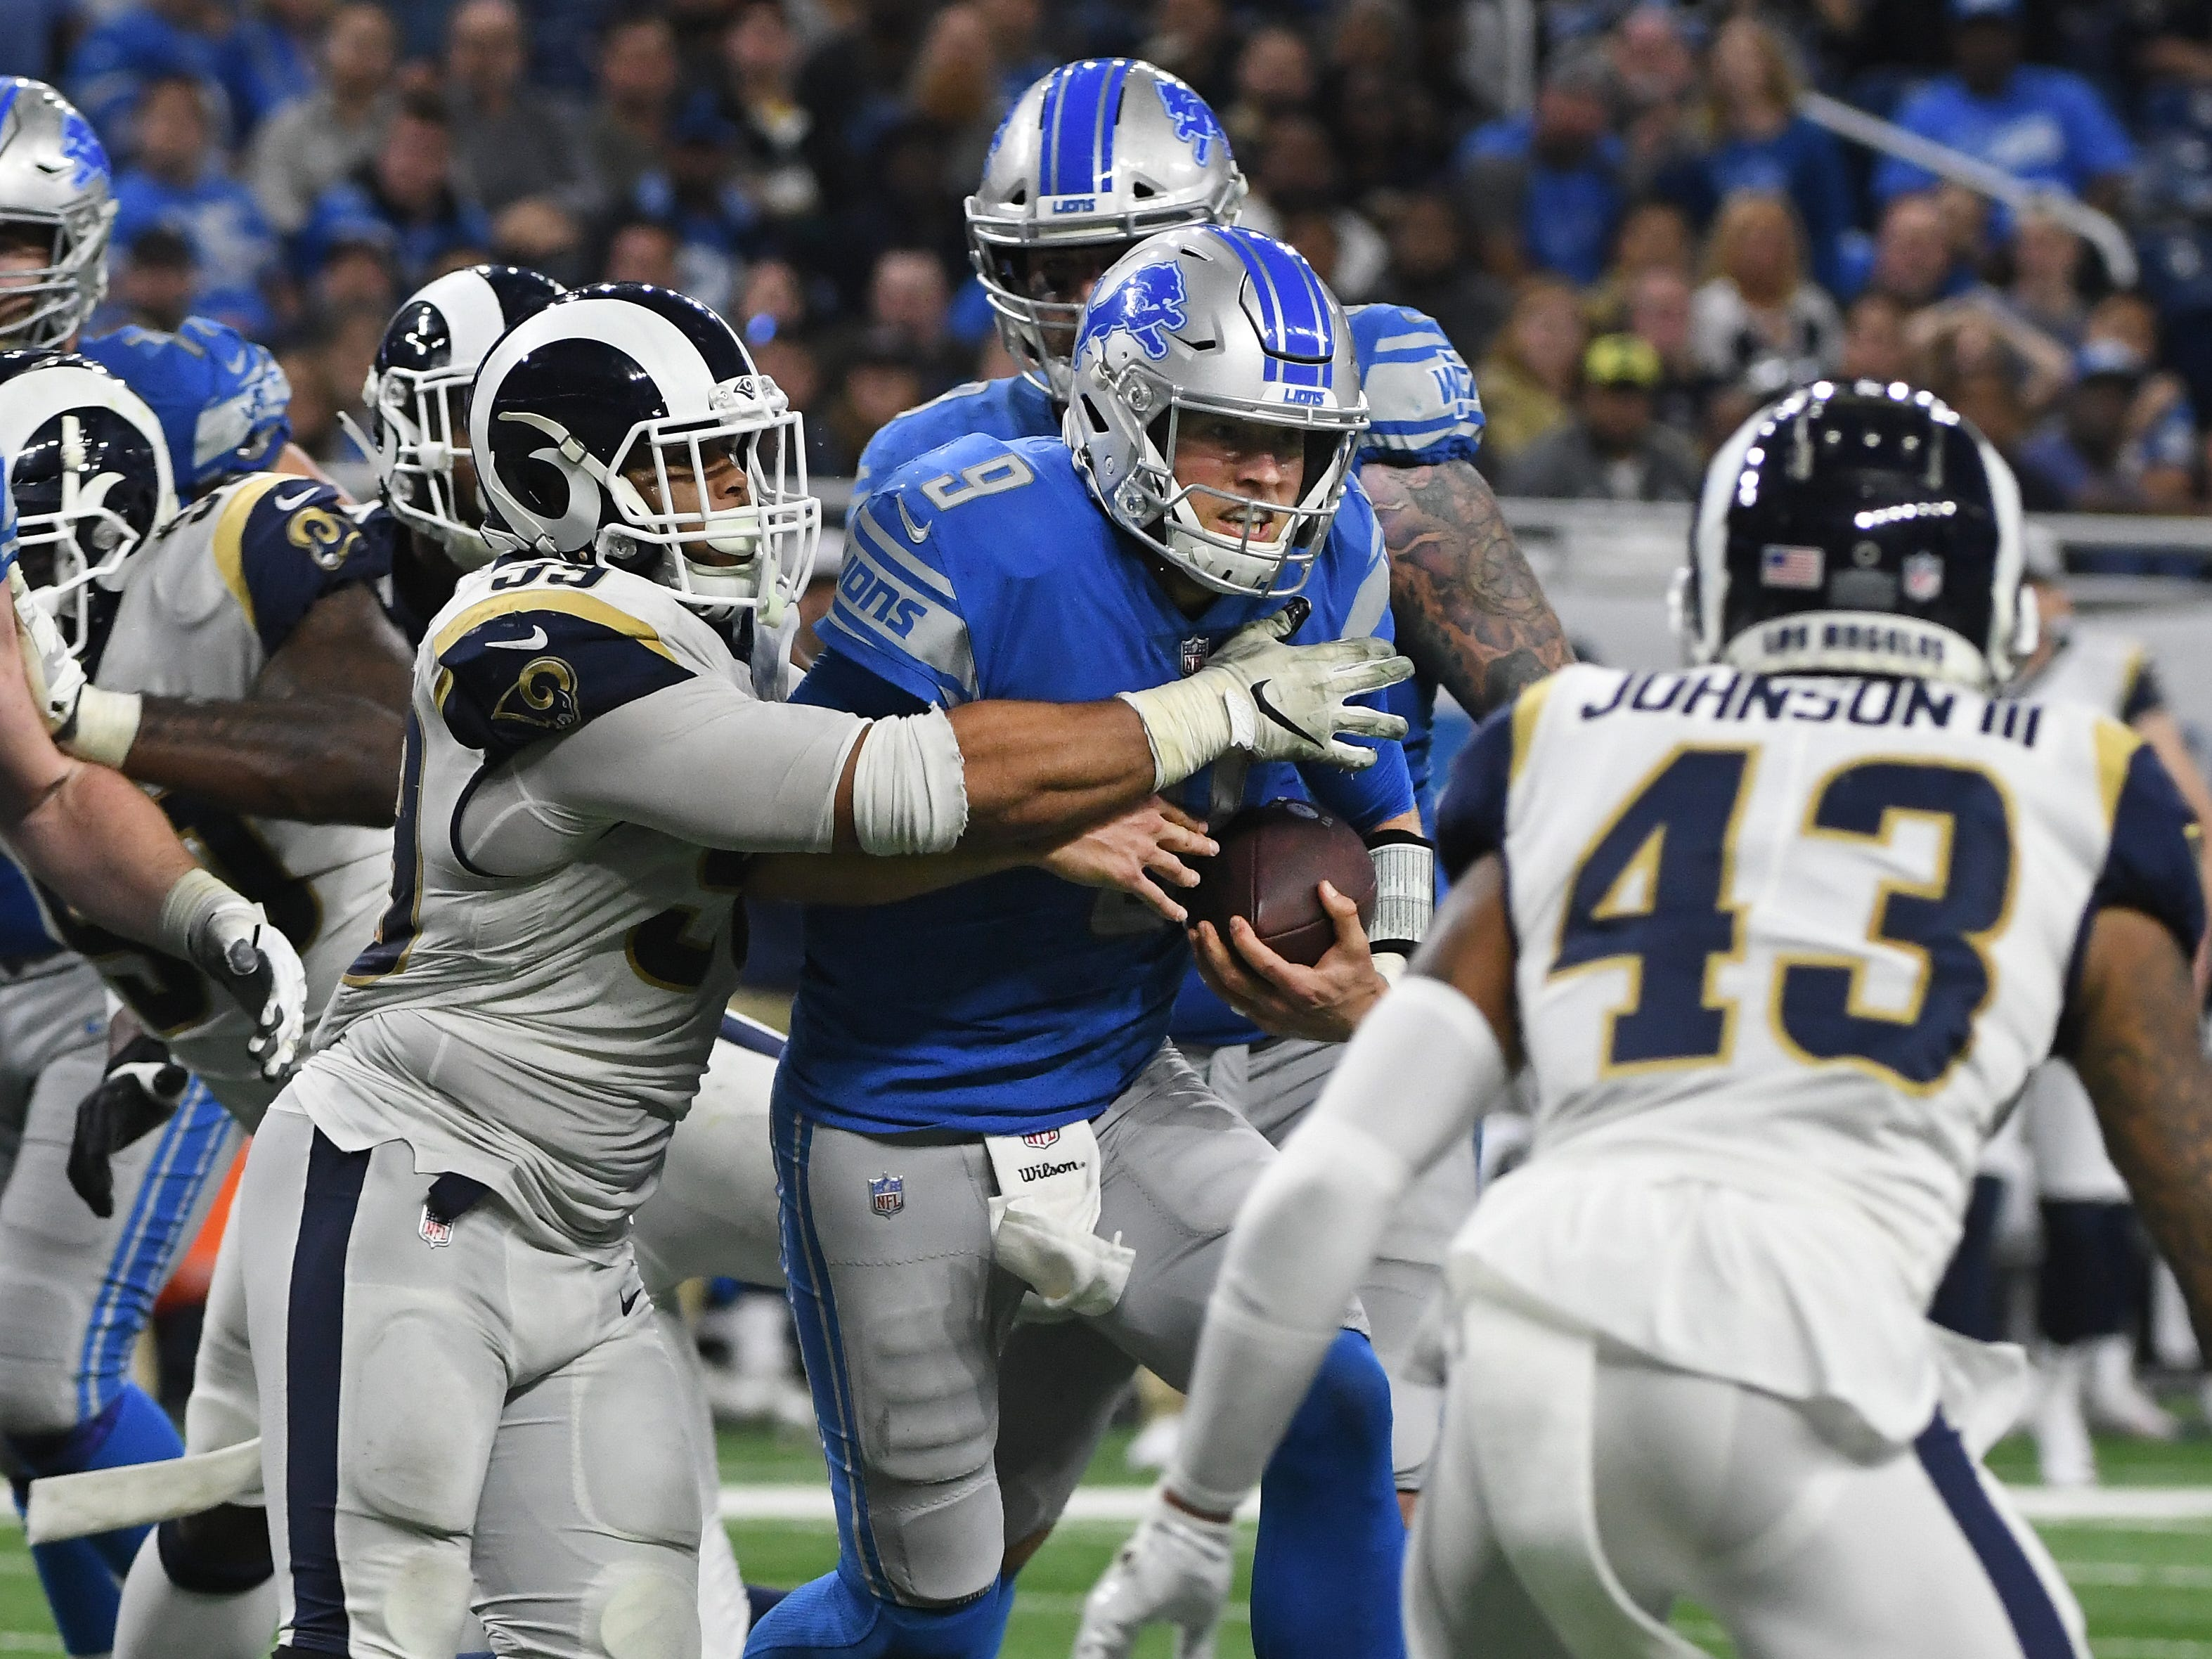 Lions' Matthew Stafford is pressured out of the pocket by Ethan Westbrooks and the Rams and is sacked, but off-setting penalties, forces both teams to replay the down in the fourth quarter.